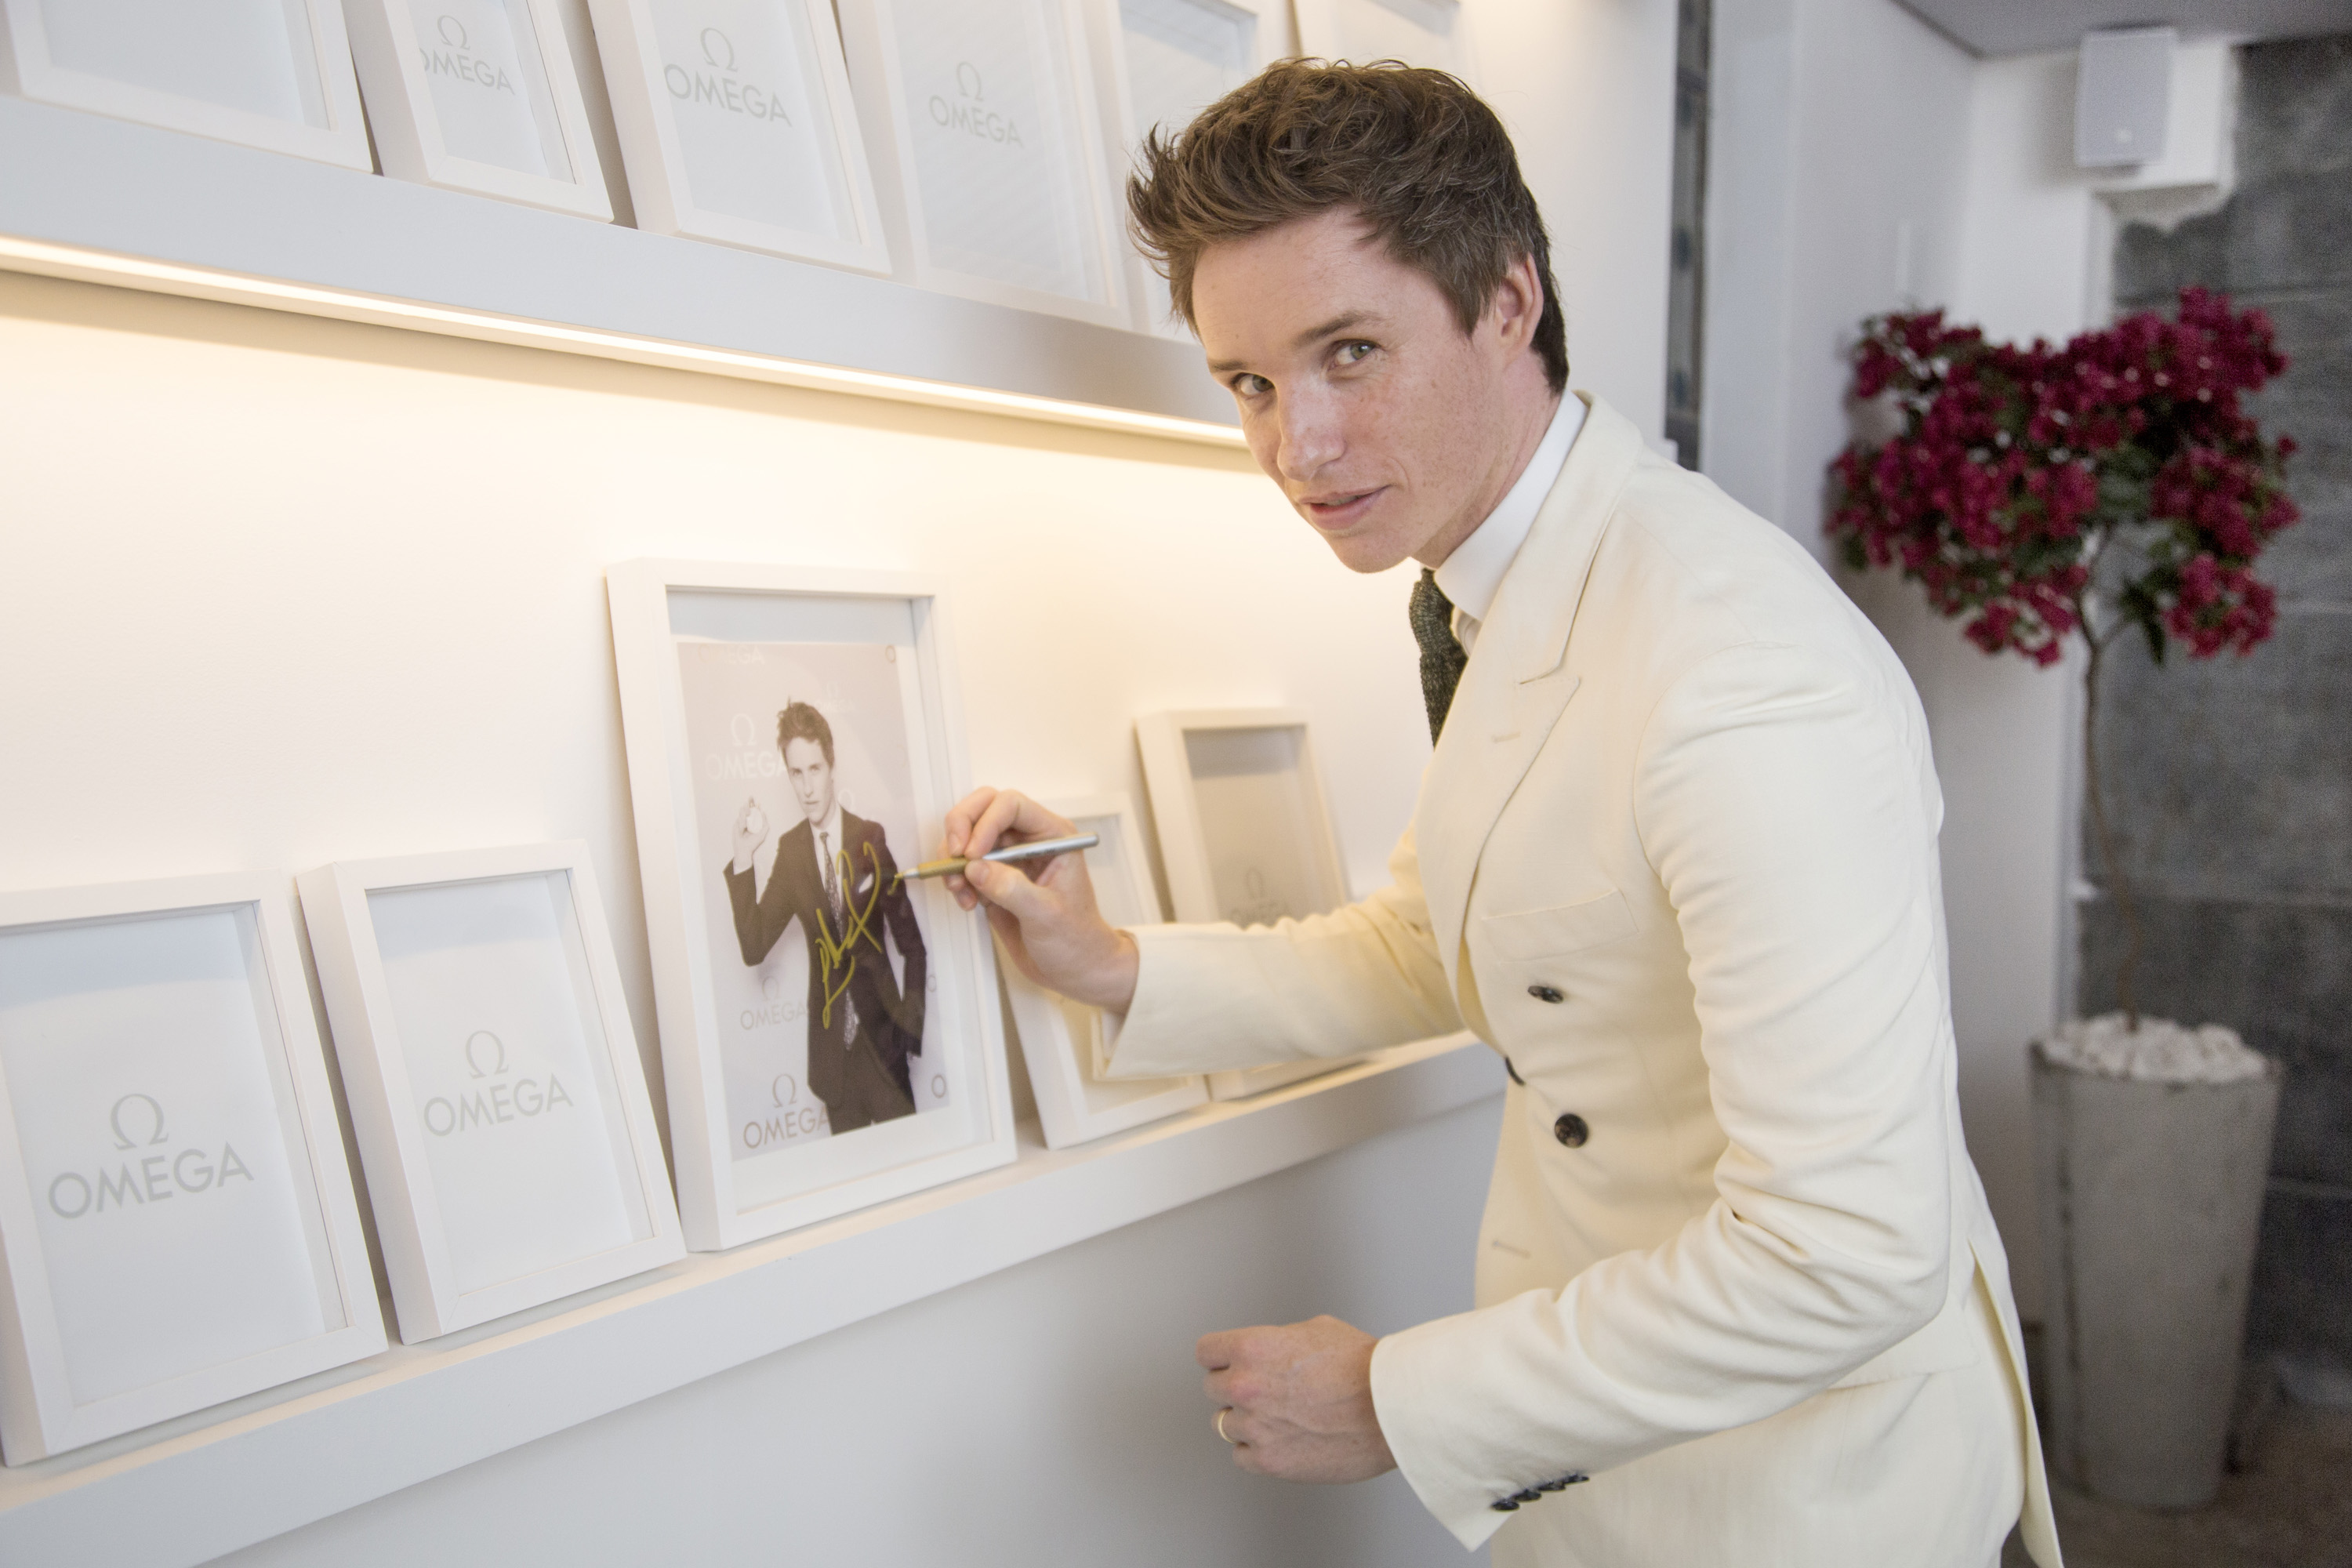 eddie_redmayne_signs_the_wall_of_fame.jpg